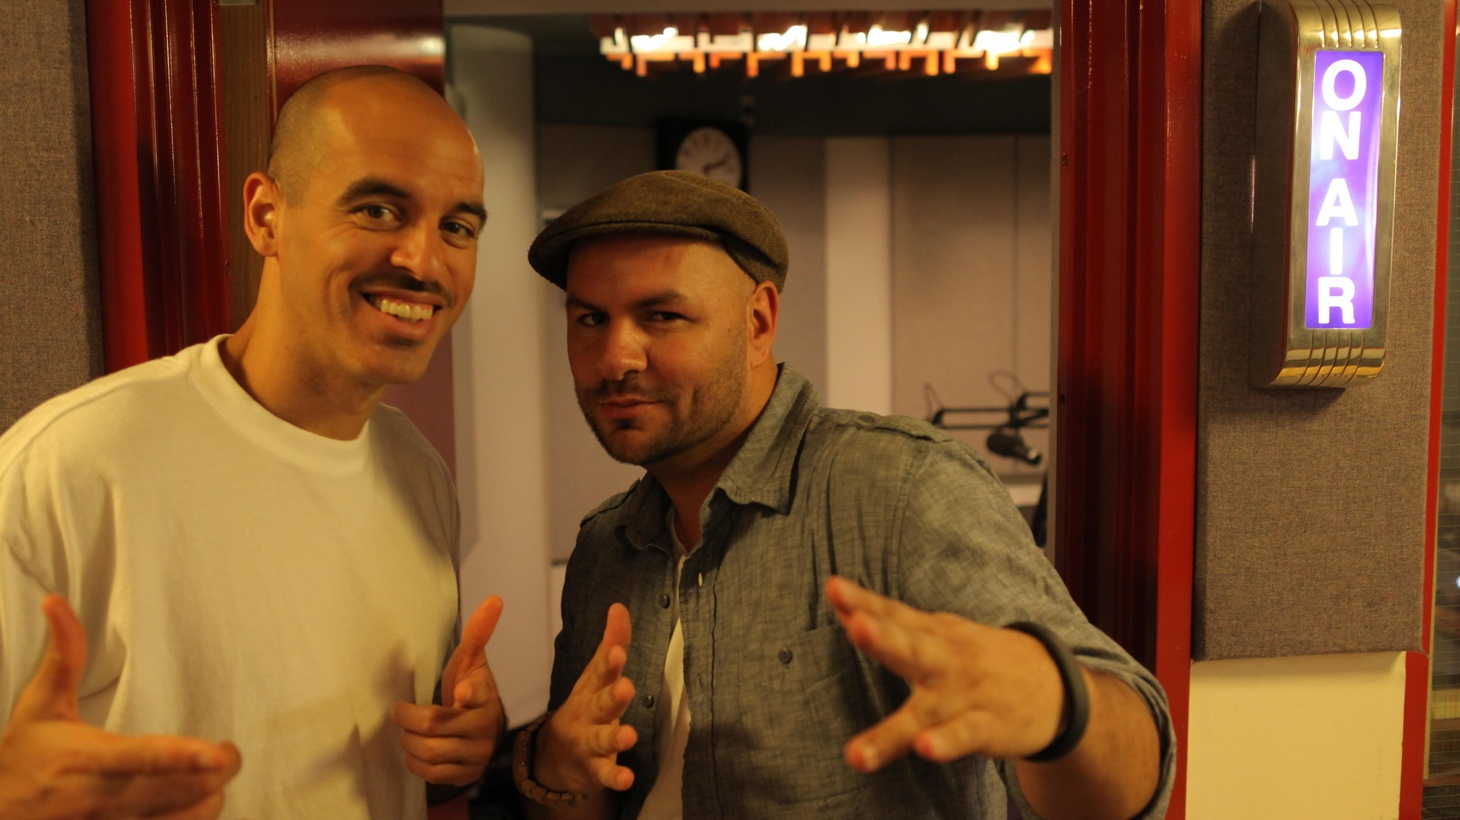 Bobbito Garcia is a legendary street ball player and New York radio DJ. He stays connected to his Puerto Rican roots through music and also puts a heavy focus on beats and fantastic female vocalists like Alice Russell and Syreeta Wright.